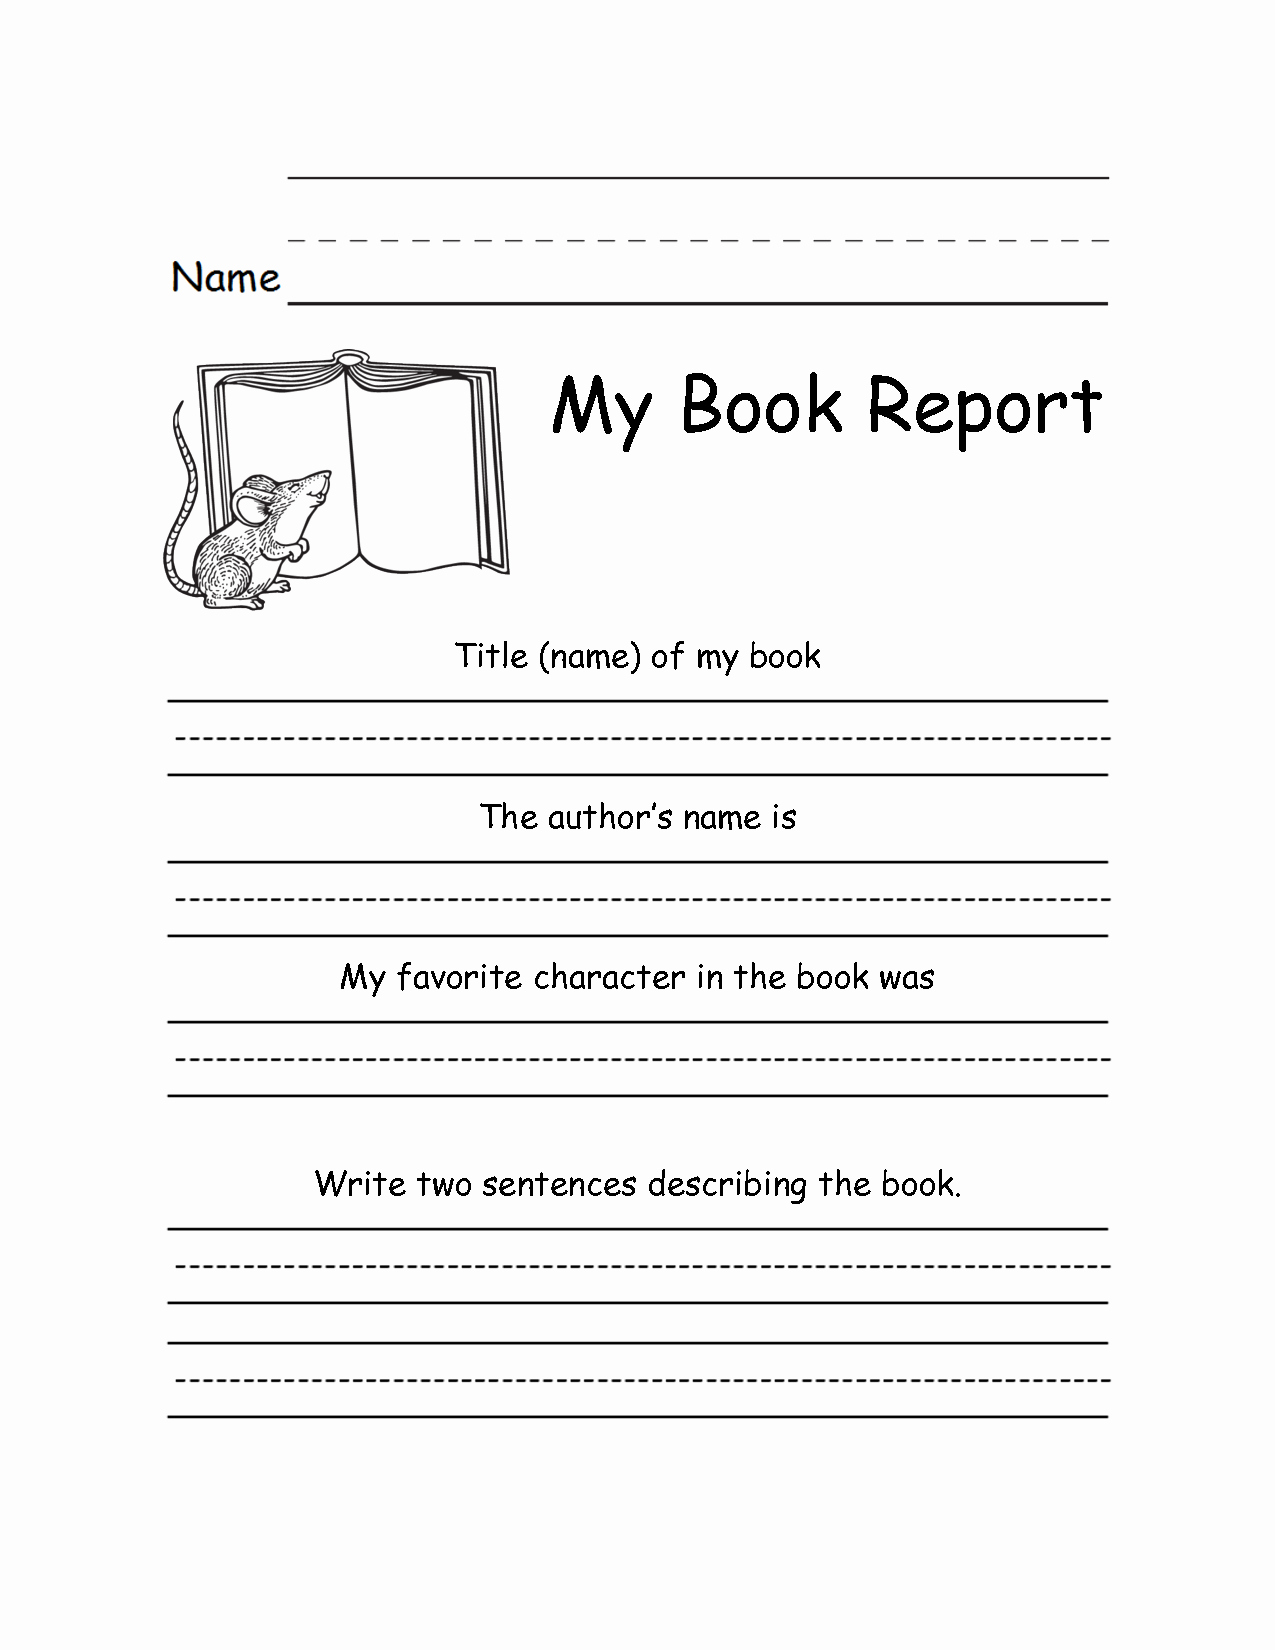 Third Grade Writing Worksheet Beautiful 2nd Grade Writing Worksheets Best Coloring Pages for Kids